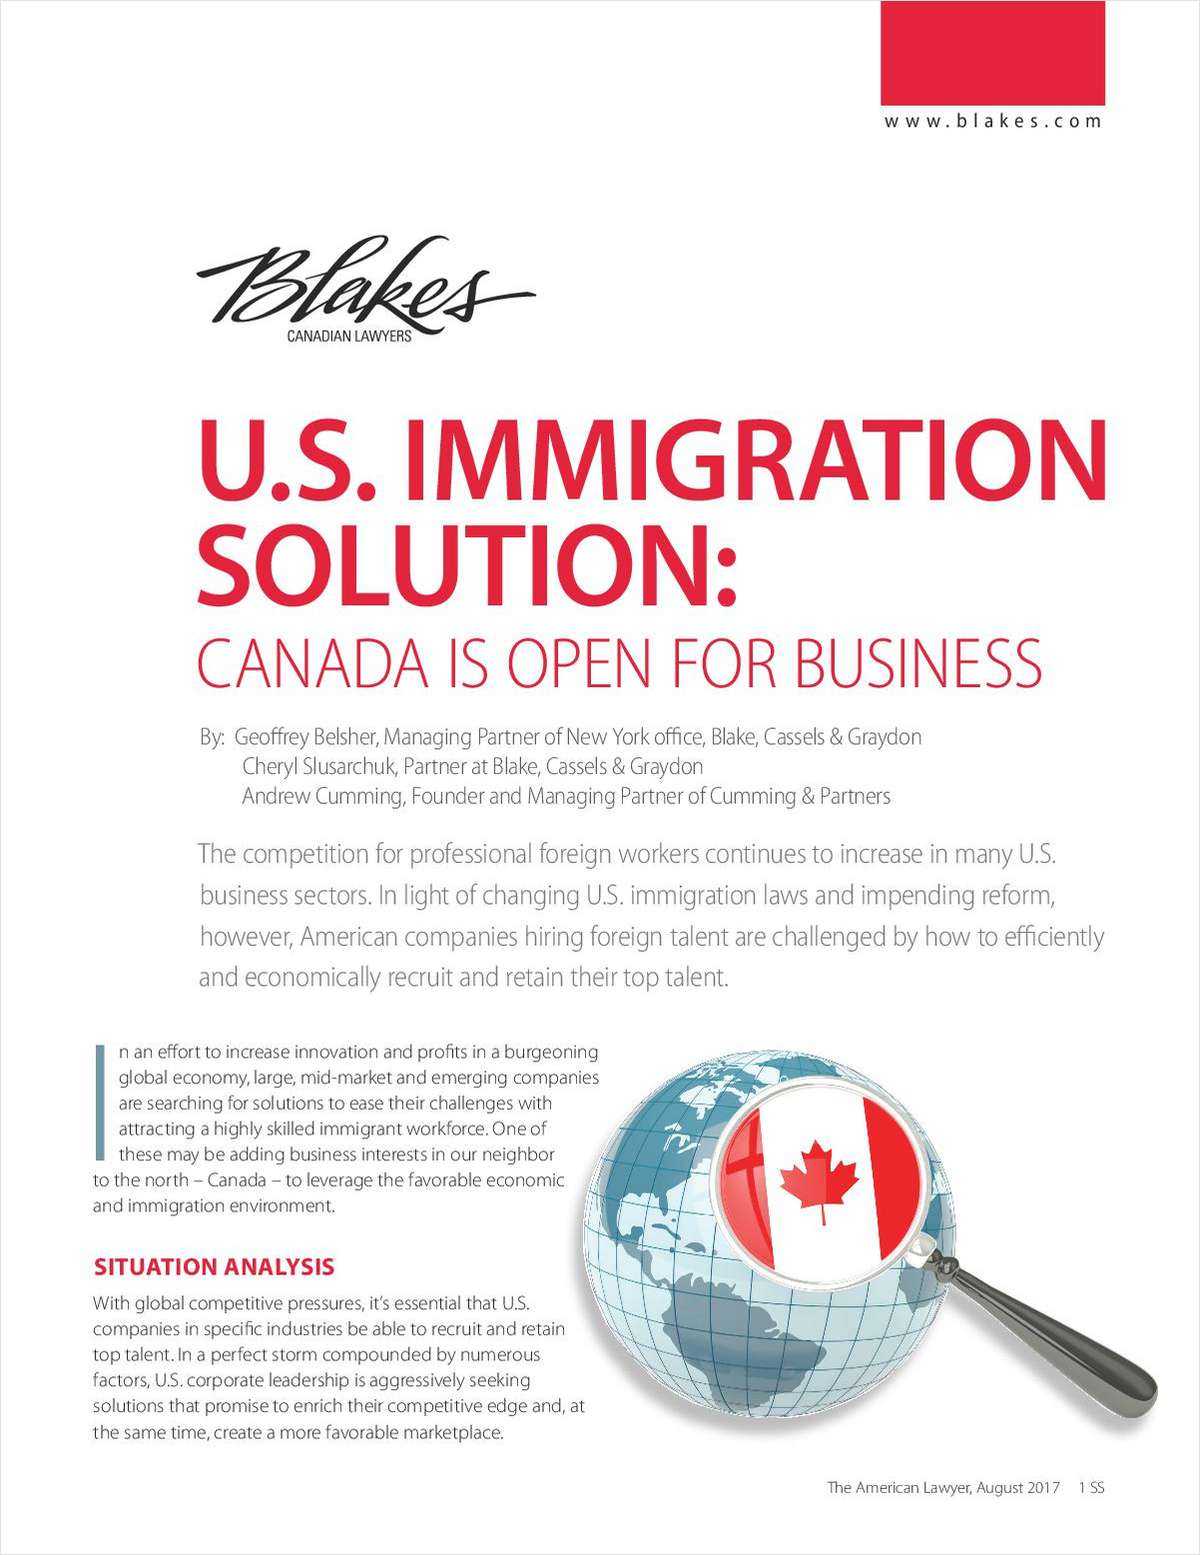 U.S. Immigration Solution: Canada is Open for Business